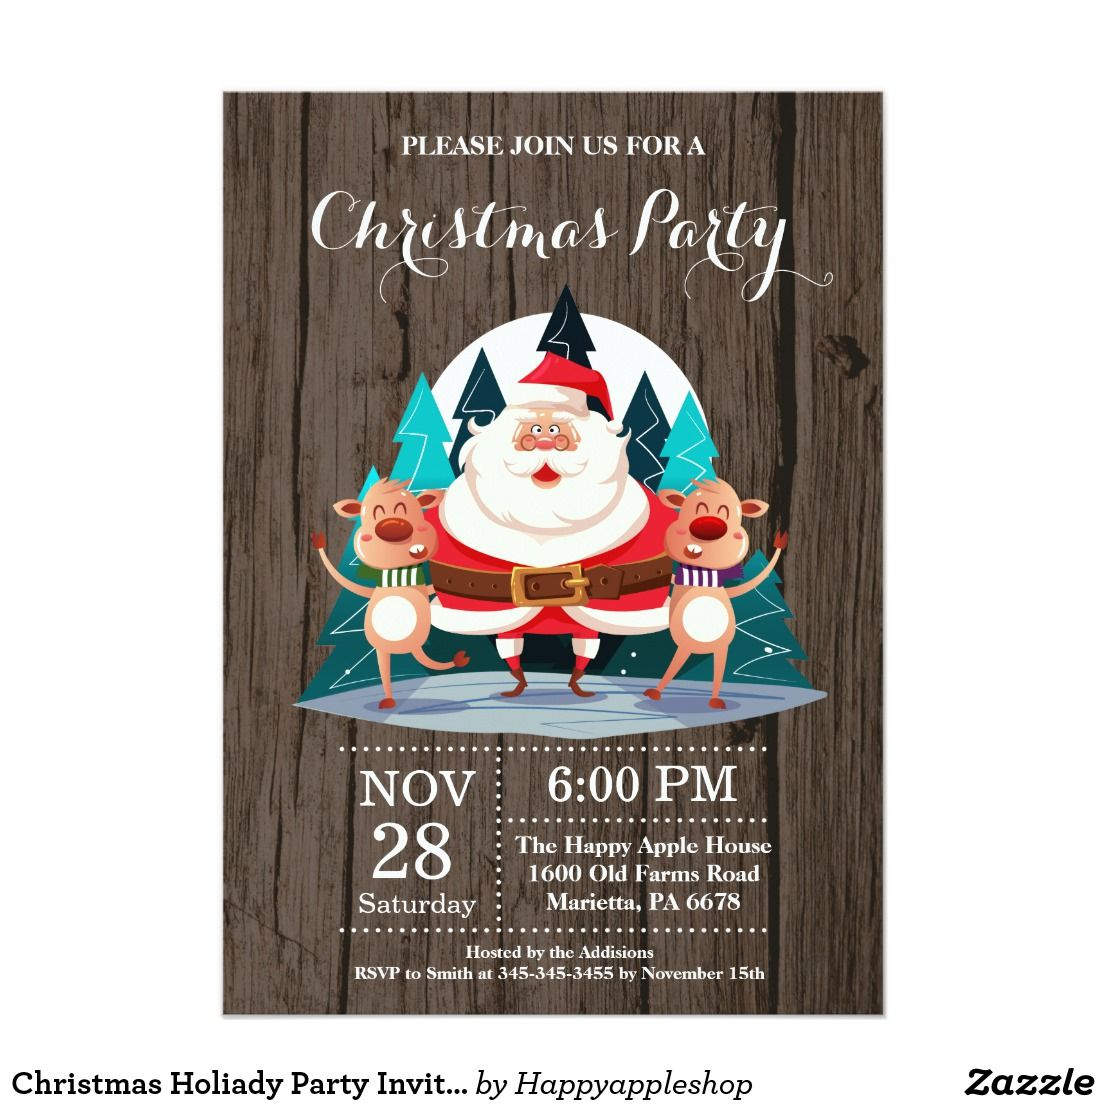 Christmas Holiady Party Invitation Santa Claus Party Invitations Party Christmas